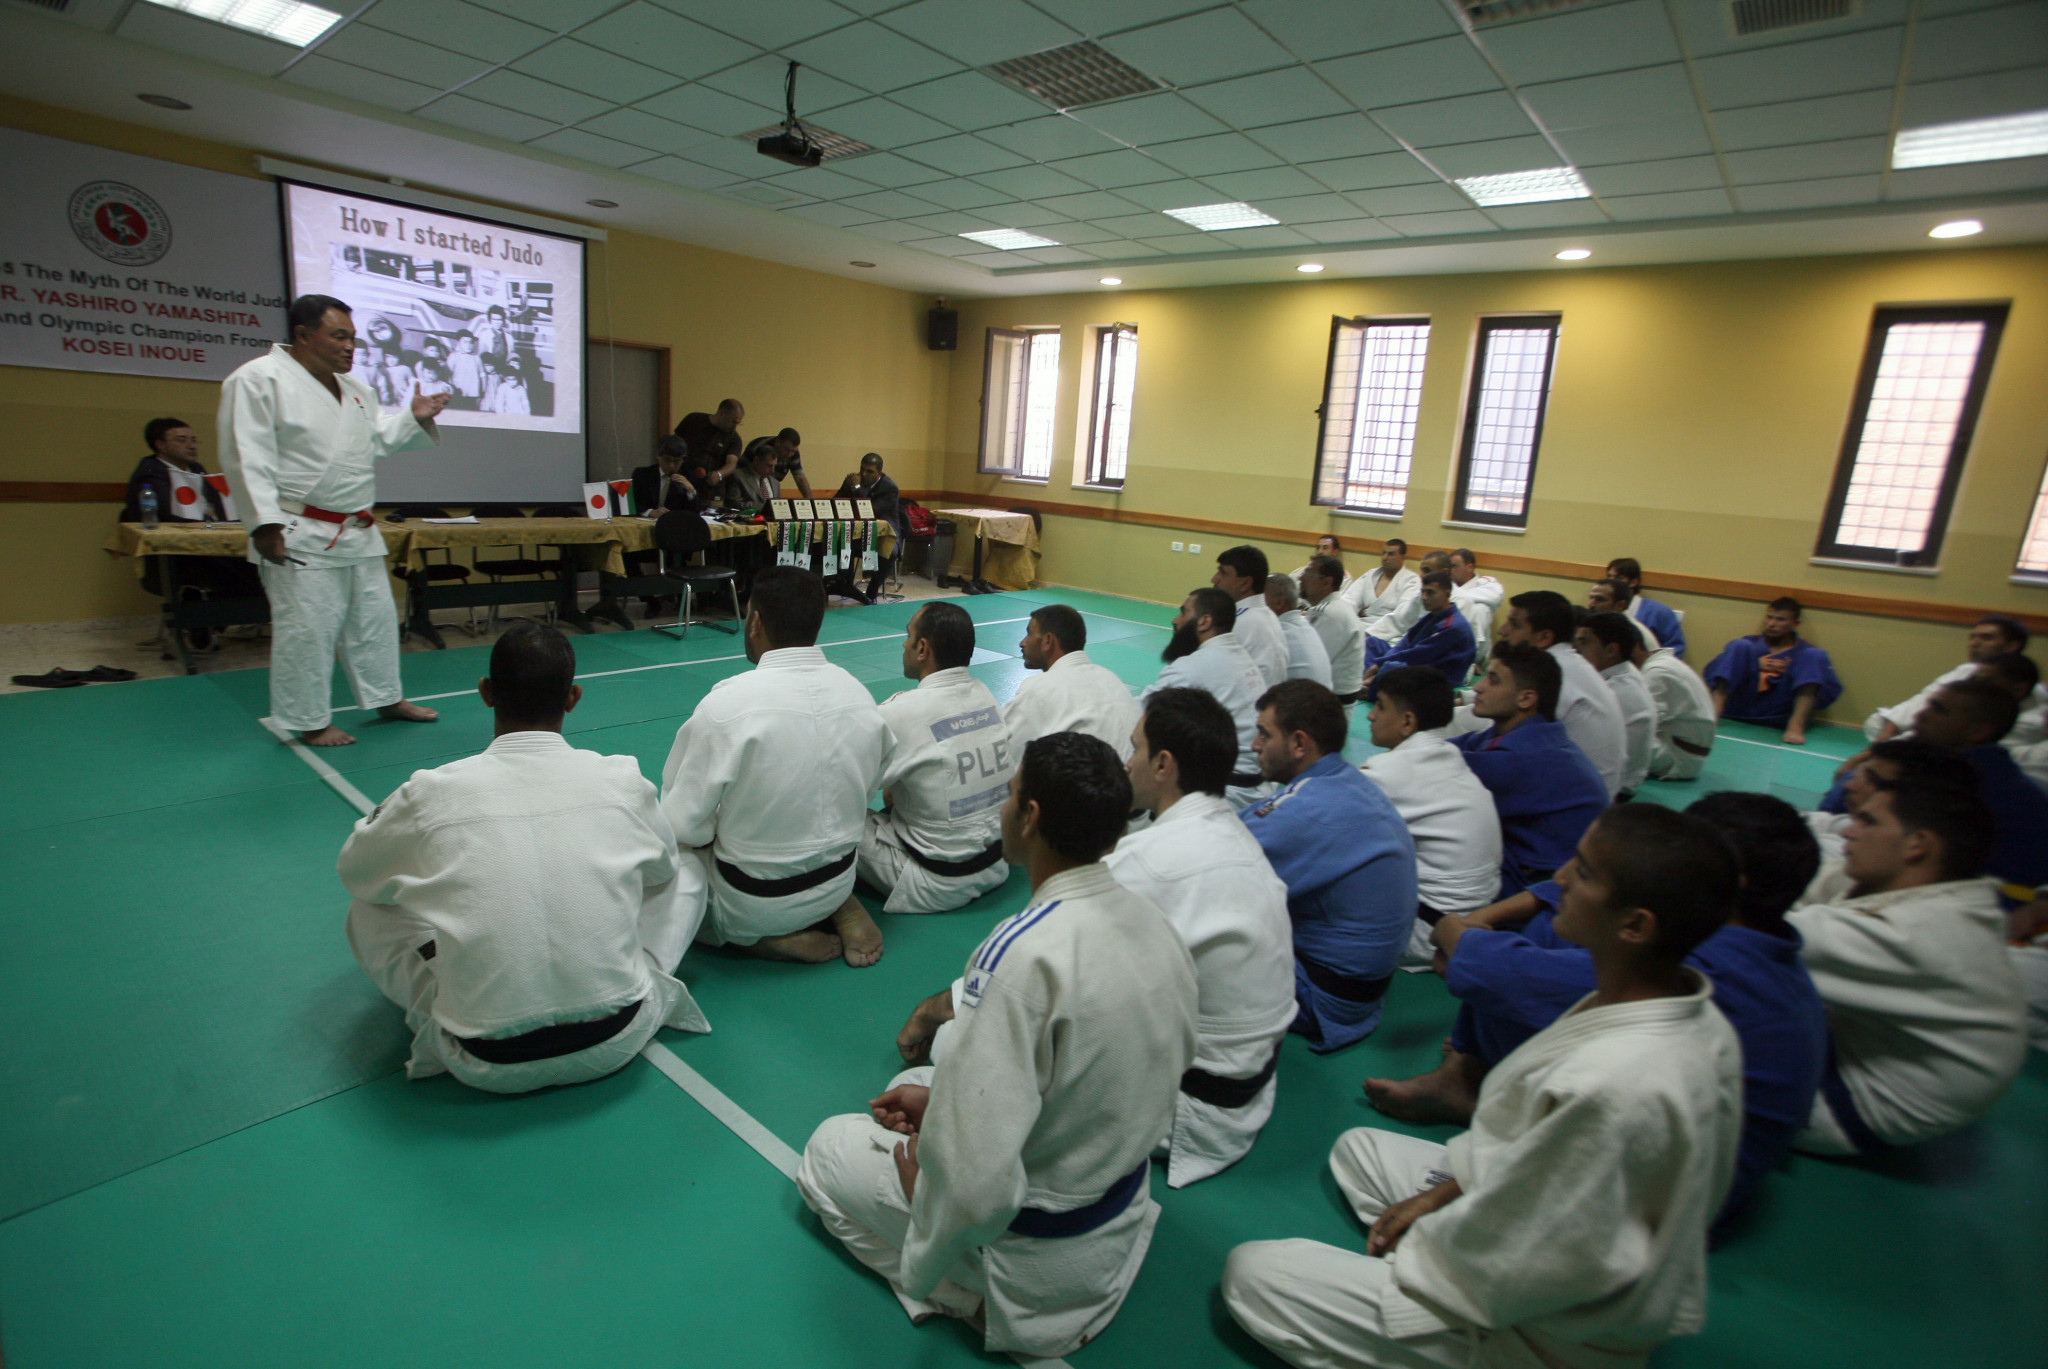 Japan's Yashiro Yamashita gives a lecture as he teaches Judo techniques to Palestinian students, members of the Judo Federation, in the biblical town of Bethlehem during his visit to the Israeli occupied Palestinian territories ©Getty Images